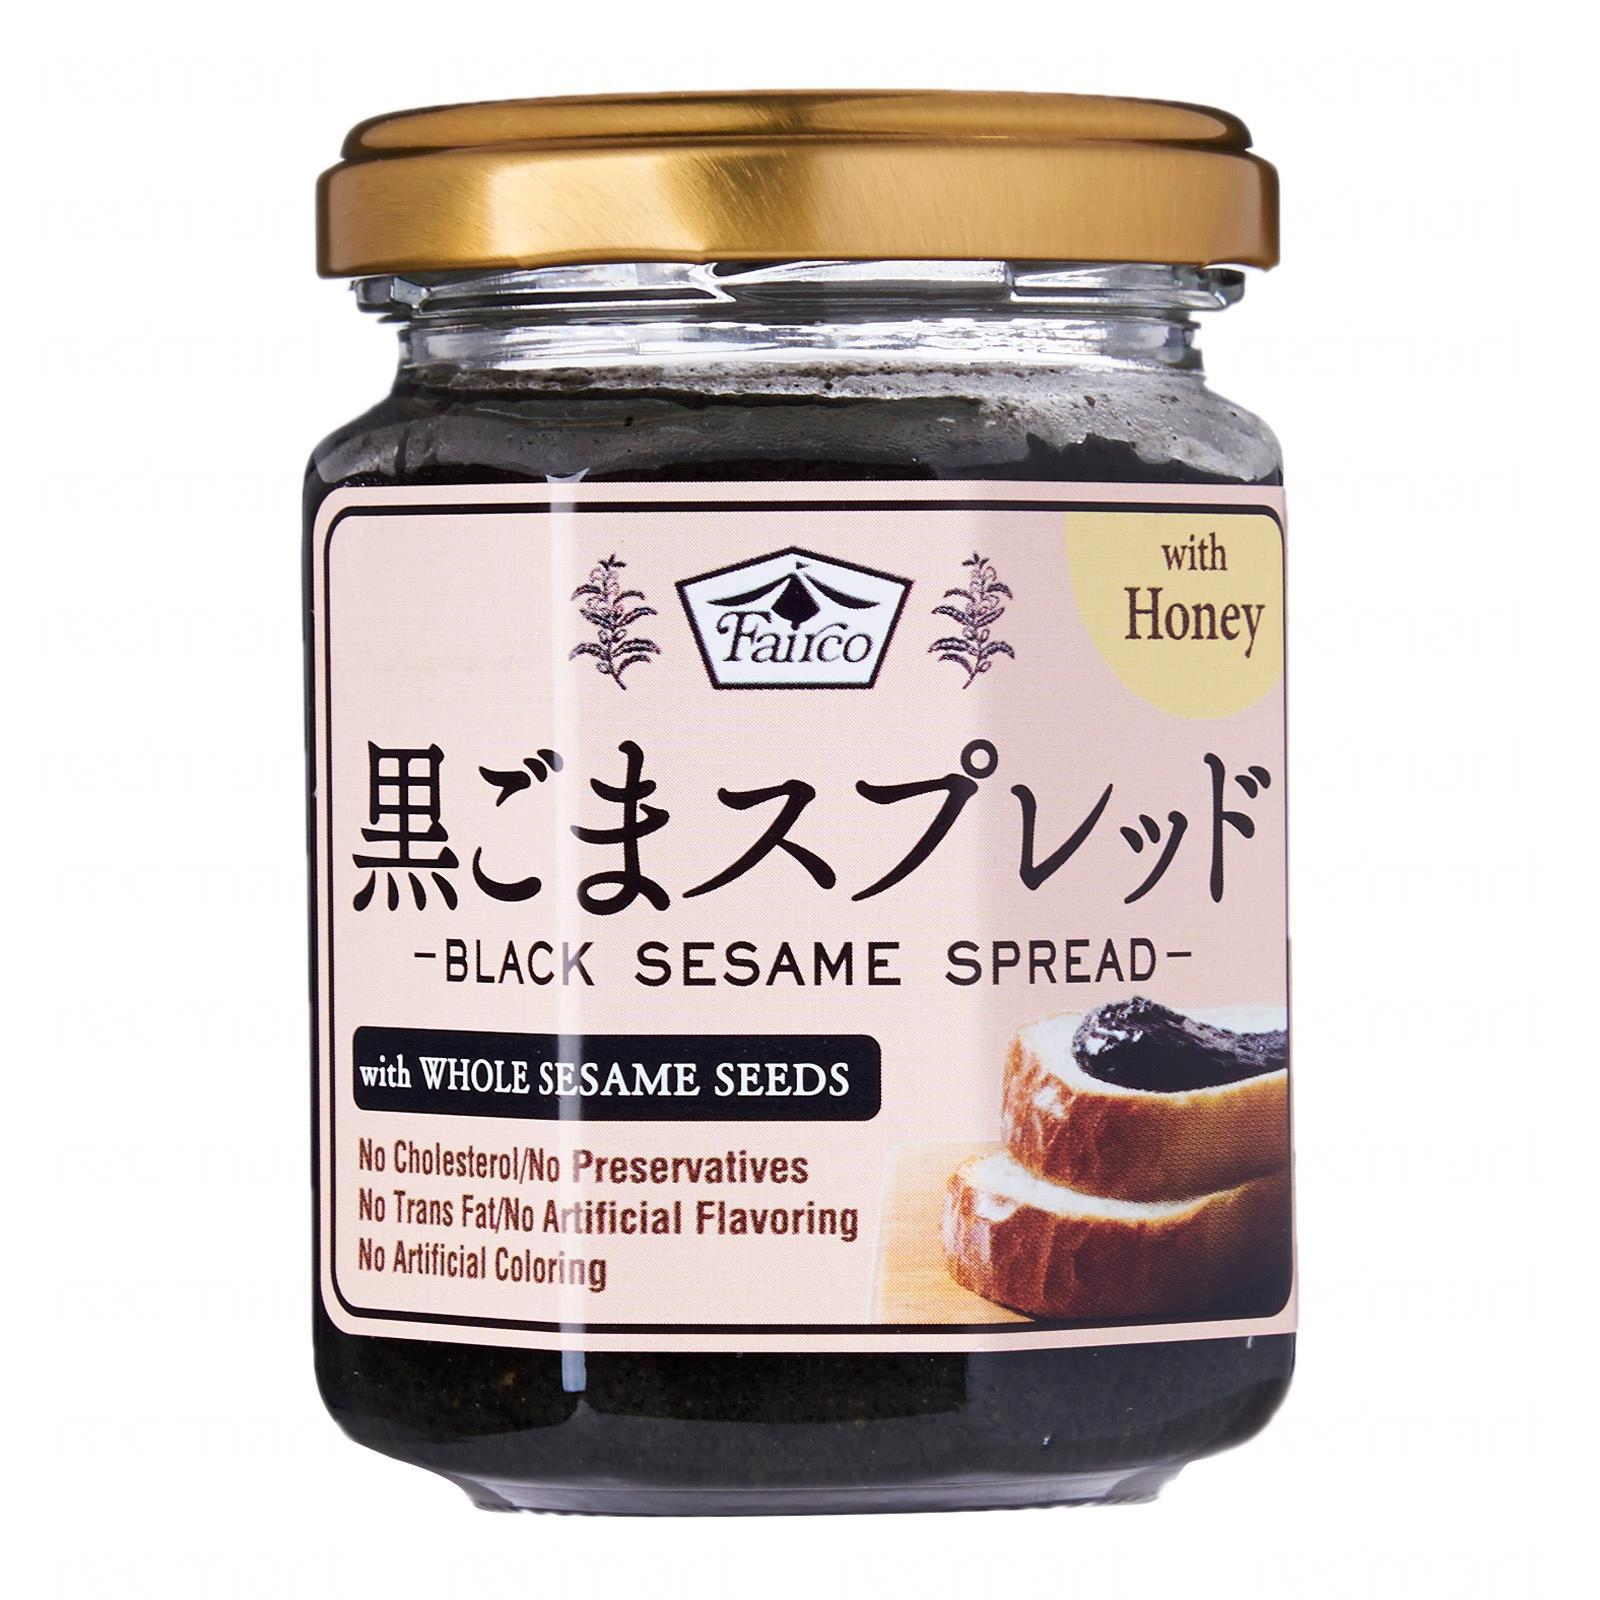 Fairco Premium Black Sesame Spread (W/Whole Sesame)